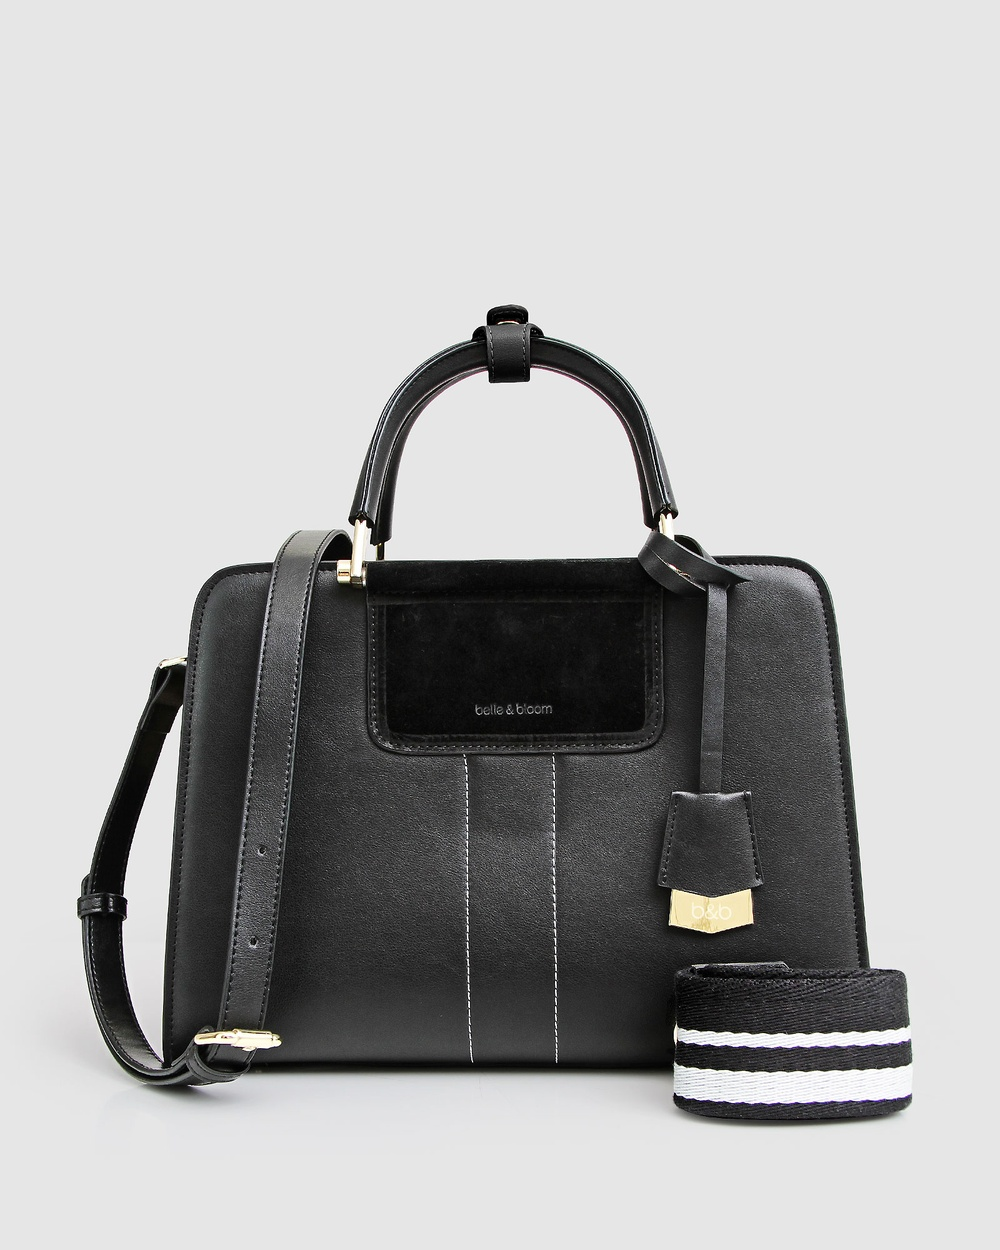 Belle & Bloom Almost Famous Leather Satchel Bags Black